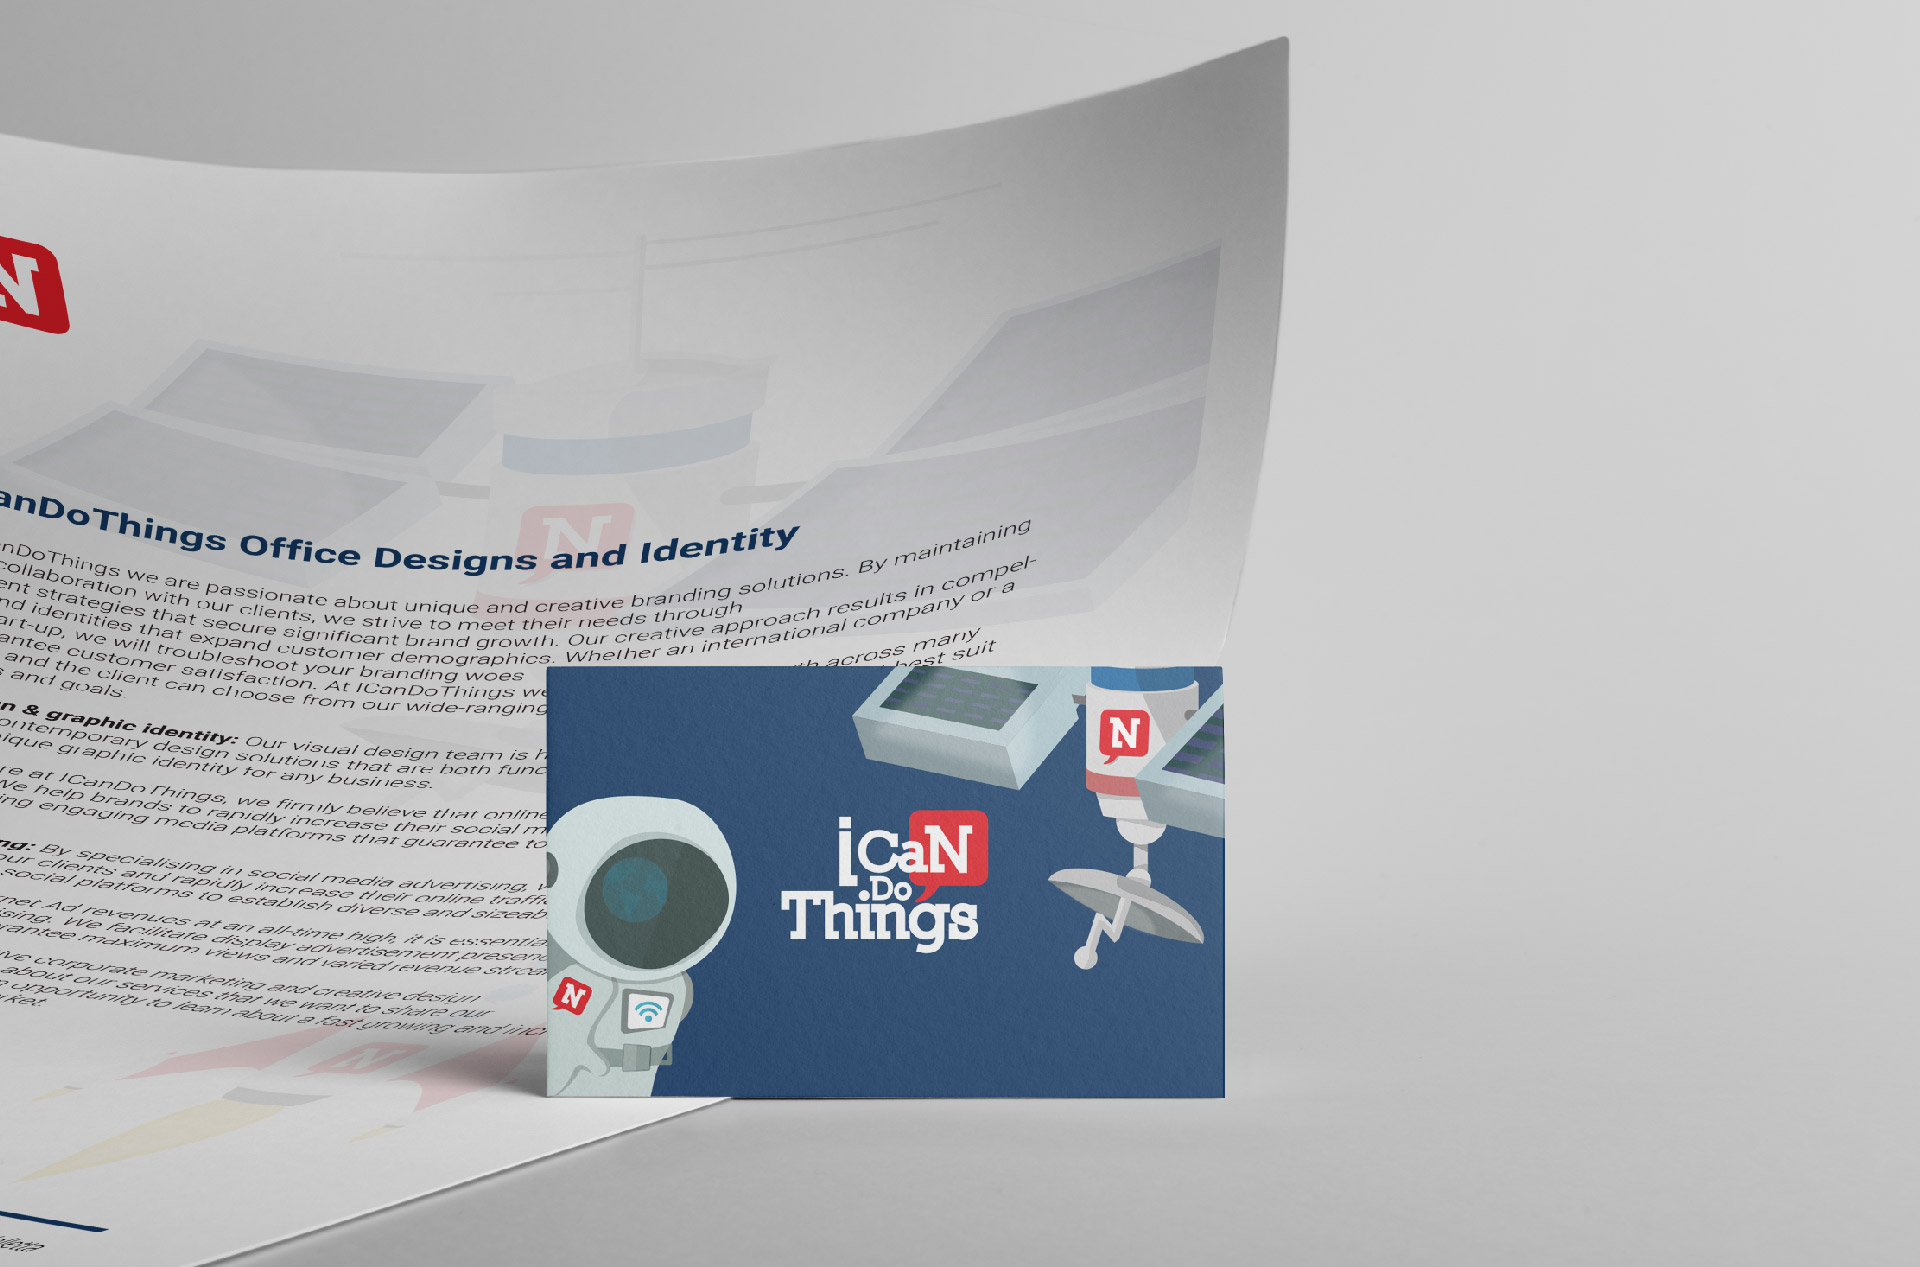 i can do things malta website design visual identity space moon general condition belgrade serbia jovan lakic